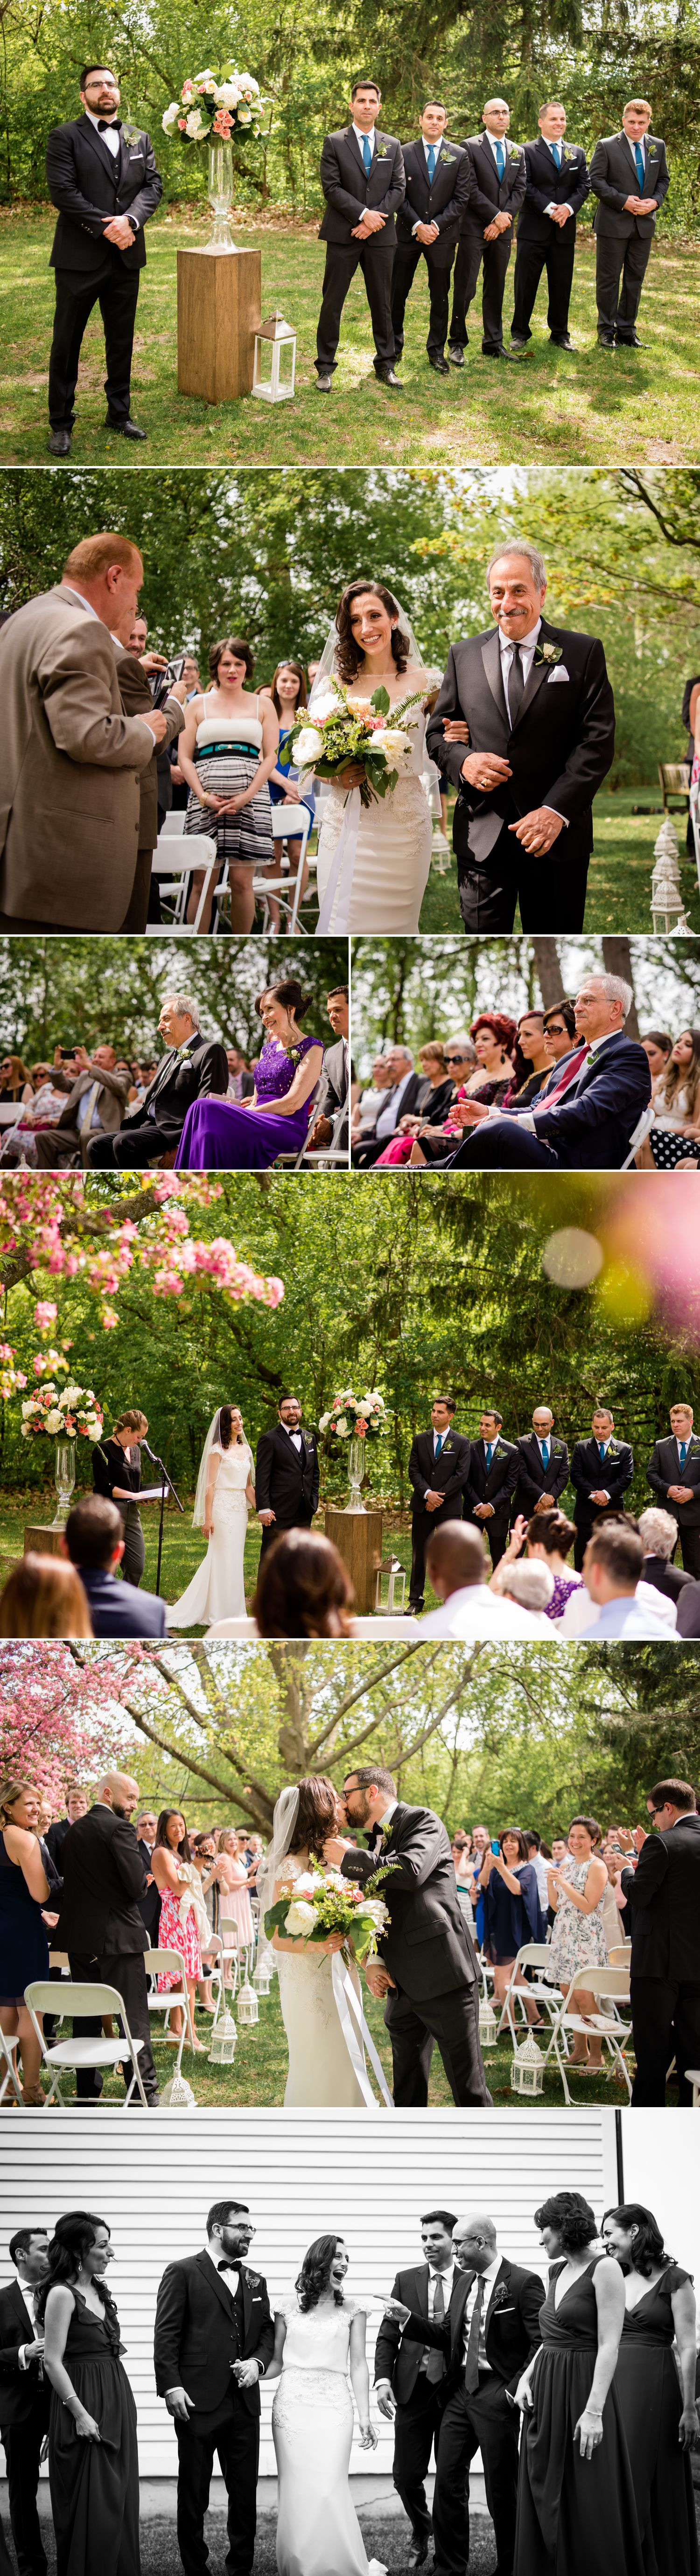 A wedding ceremony at Billings Estate